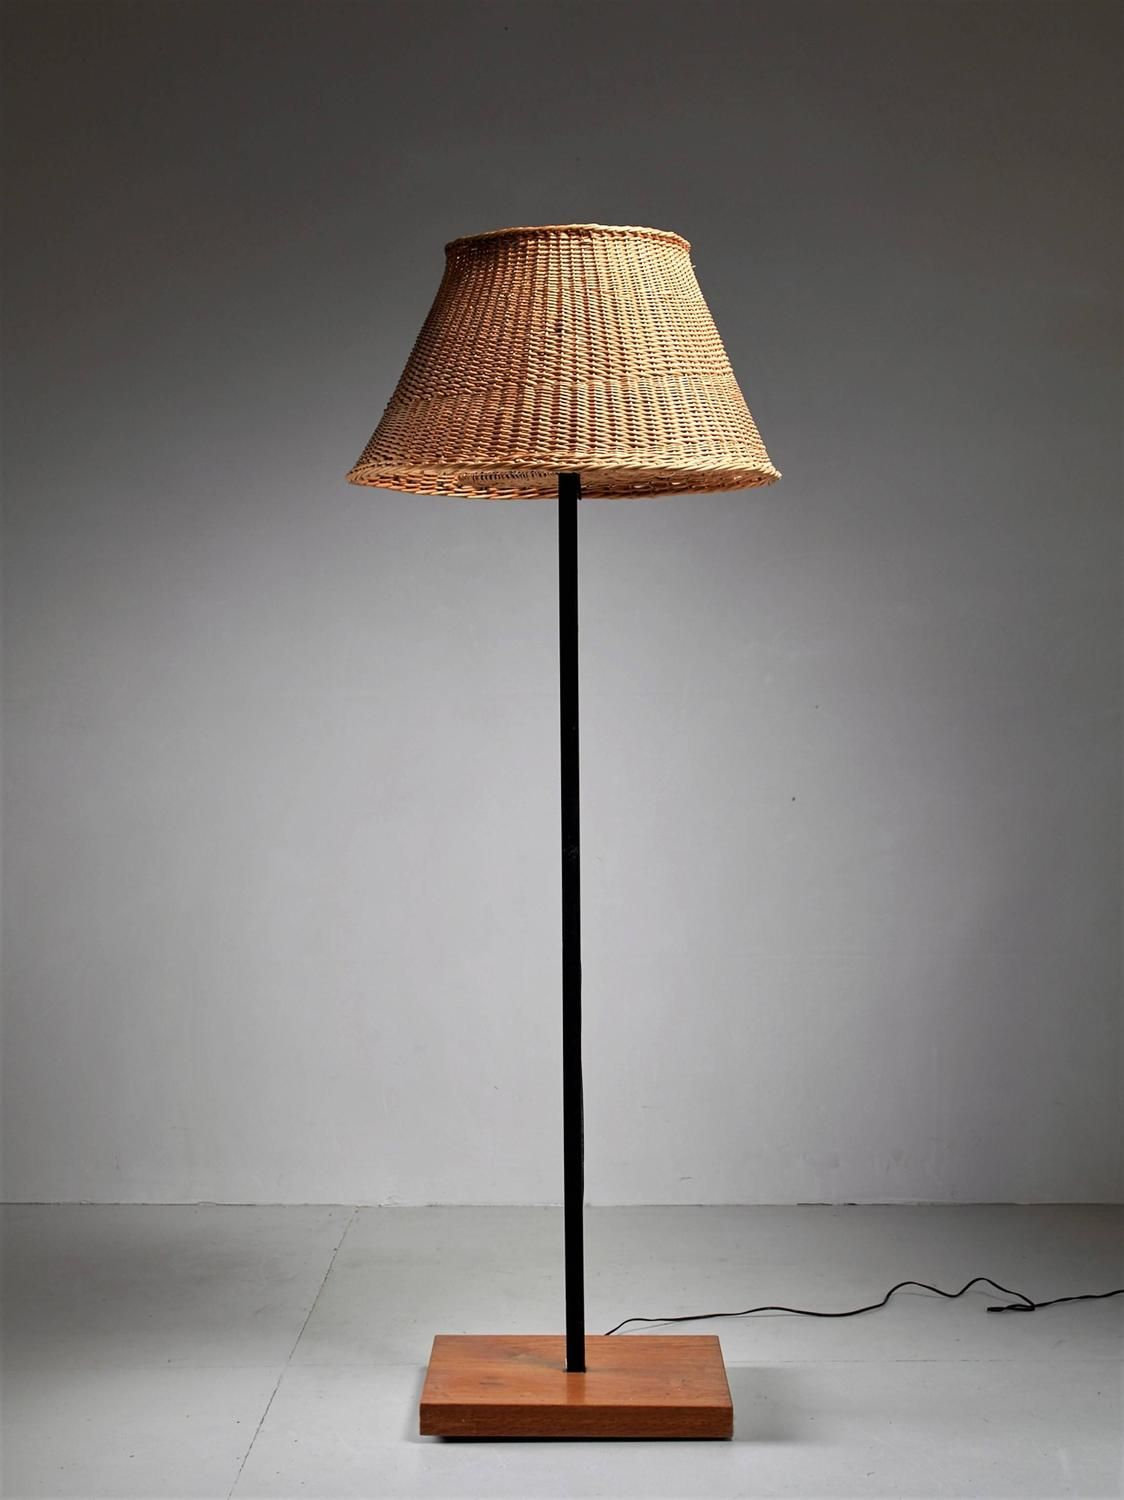 Jean Touret Iron And Wicker Floor Lamp For Marolles France 1950s